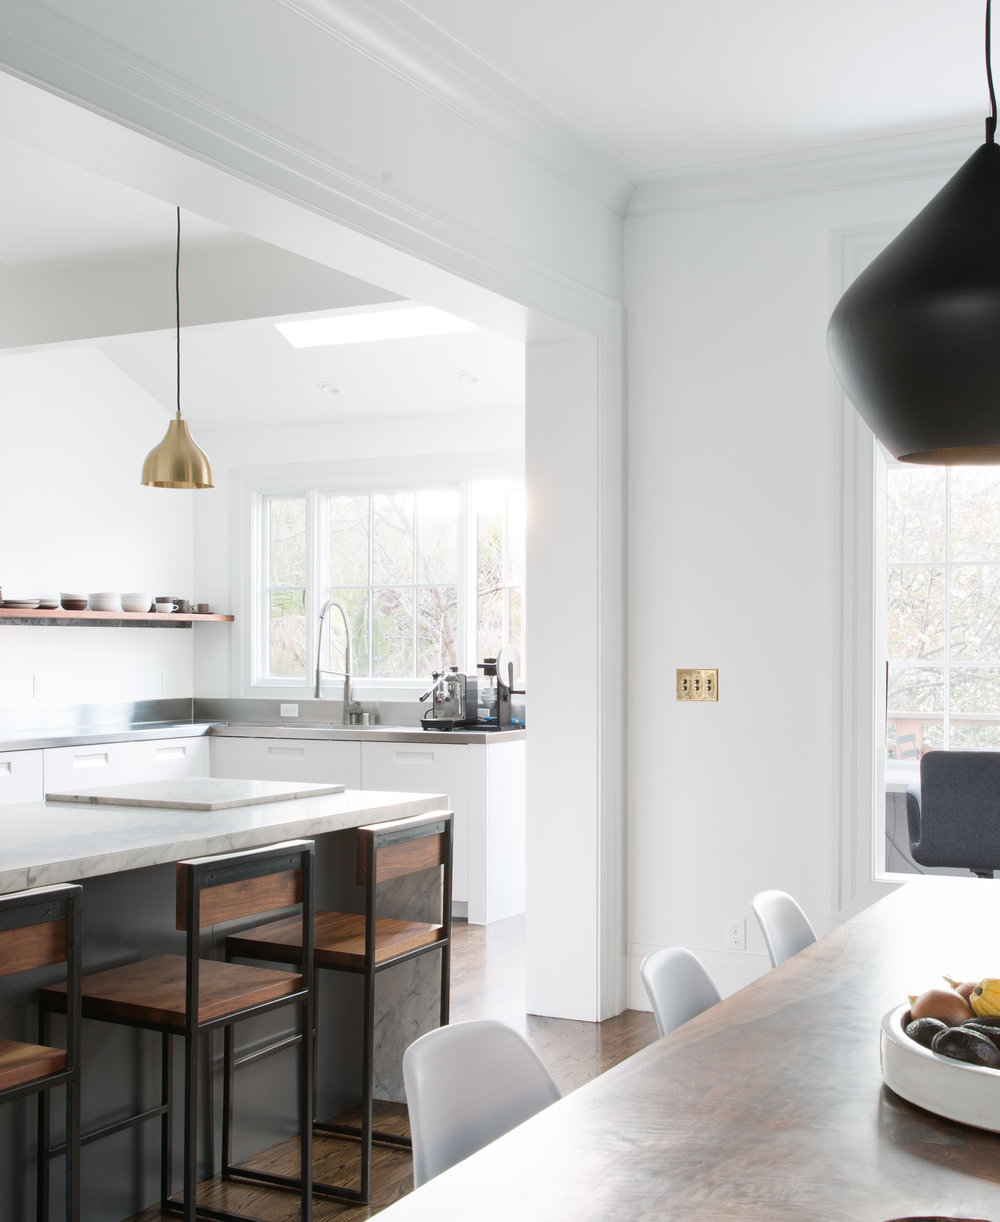 kitchen and dining area with bar seating and live edge dining table and white dining chairs and marble island counters and steel kitchen counters and white cabinets and open shelving and gold pendant light.jpg